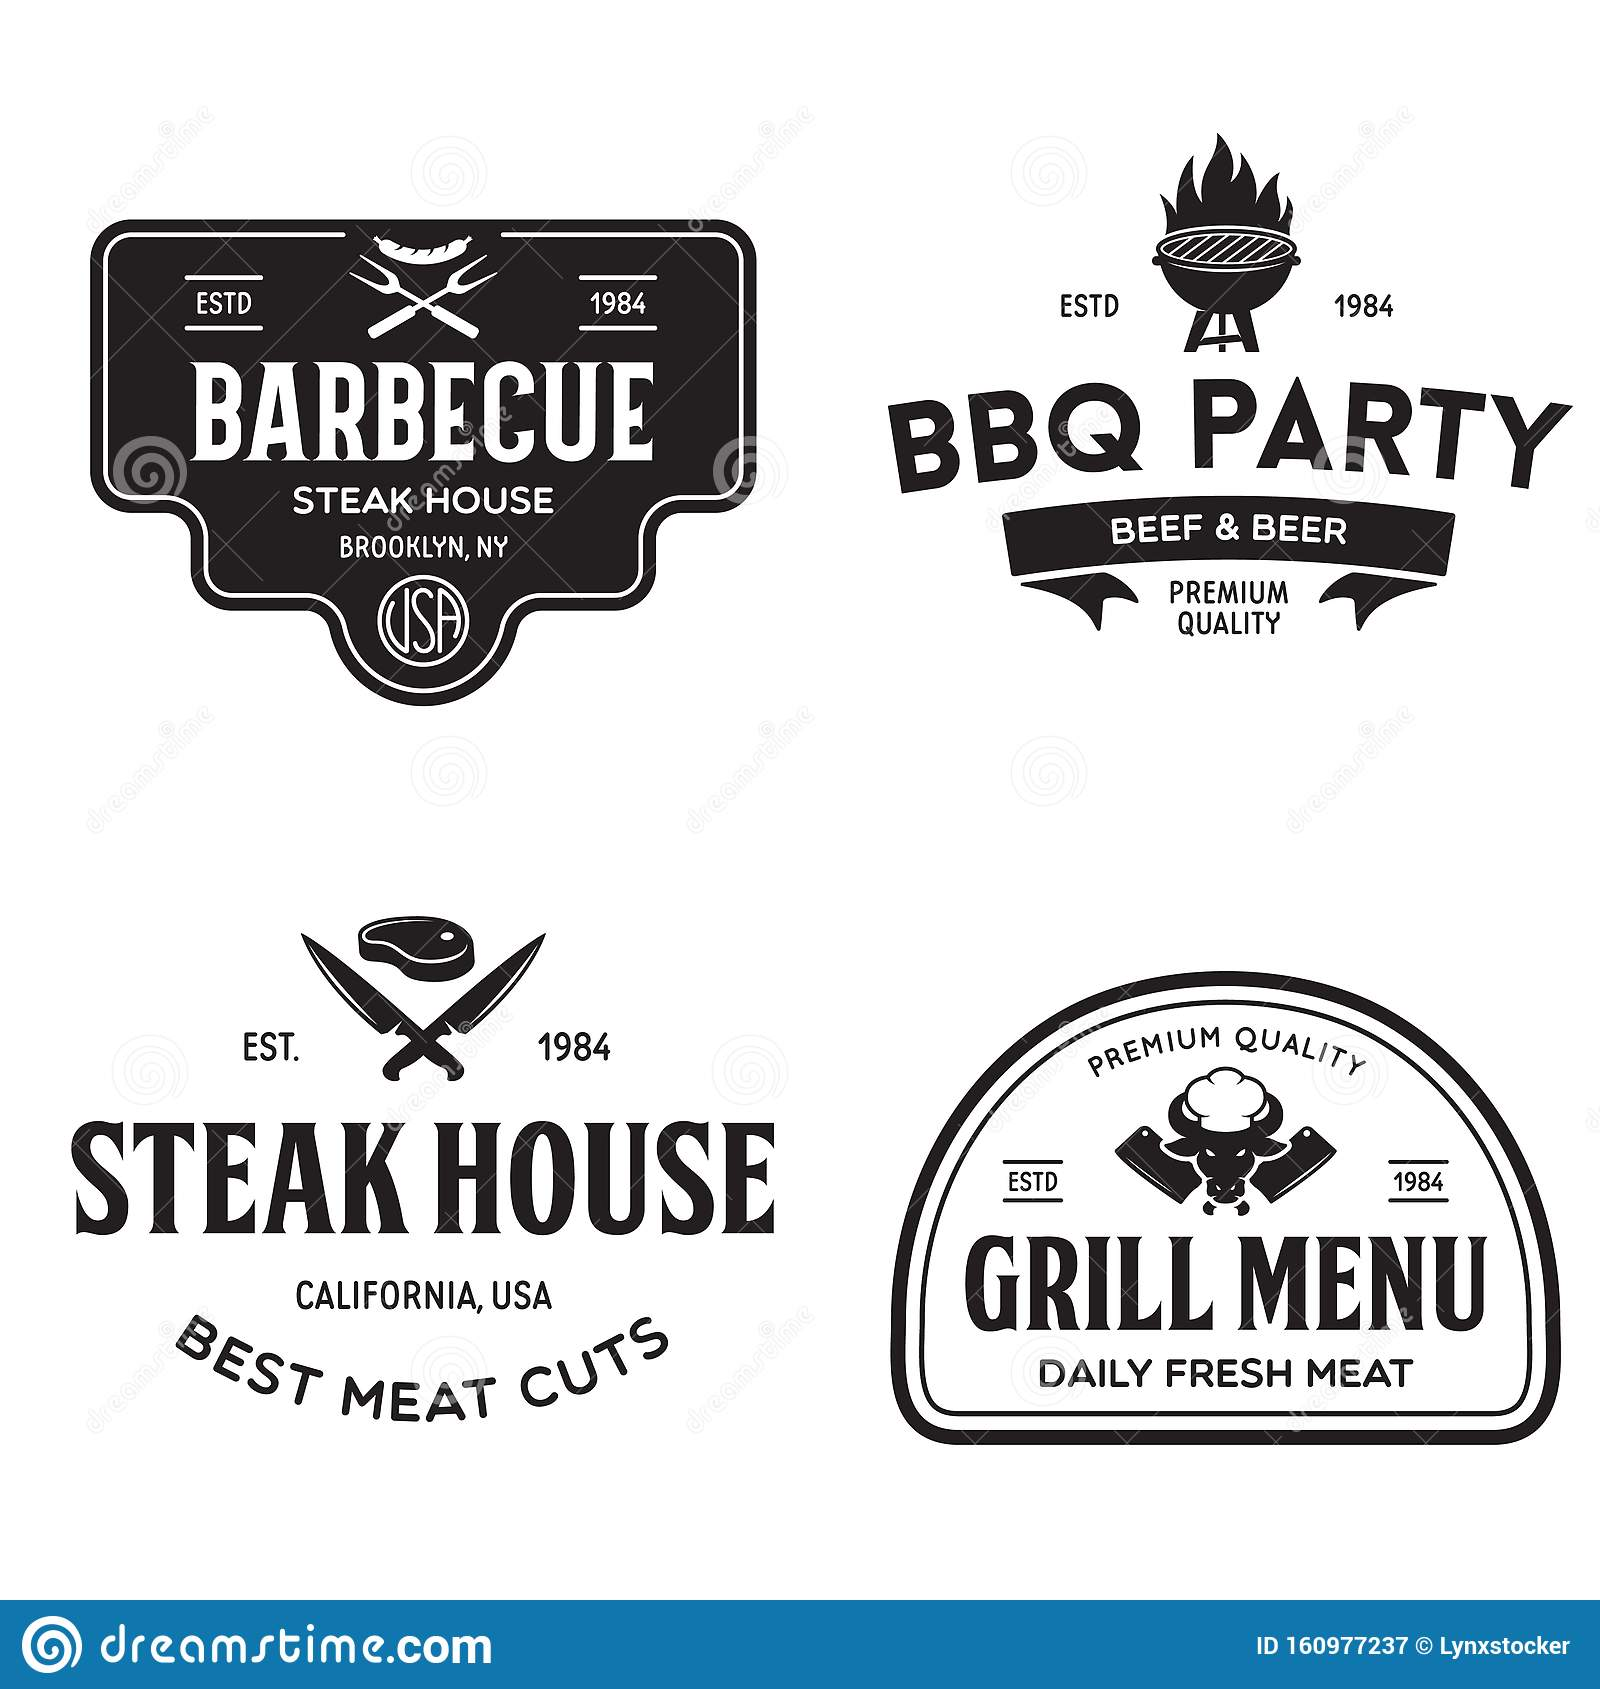 Steak House Barbecue Bbq Party Restaurant Logo Templates Collection Elements For Grill Menu Design Stock Illustration Illustration Of Cook Food 160977237